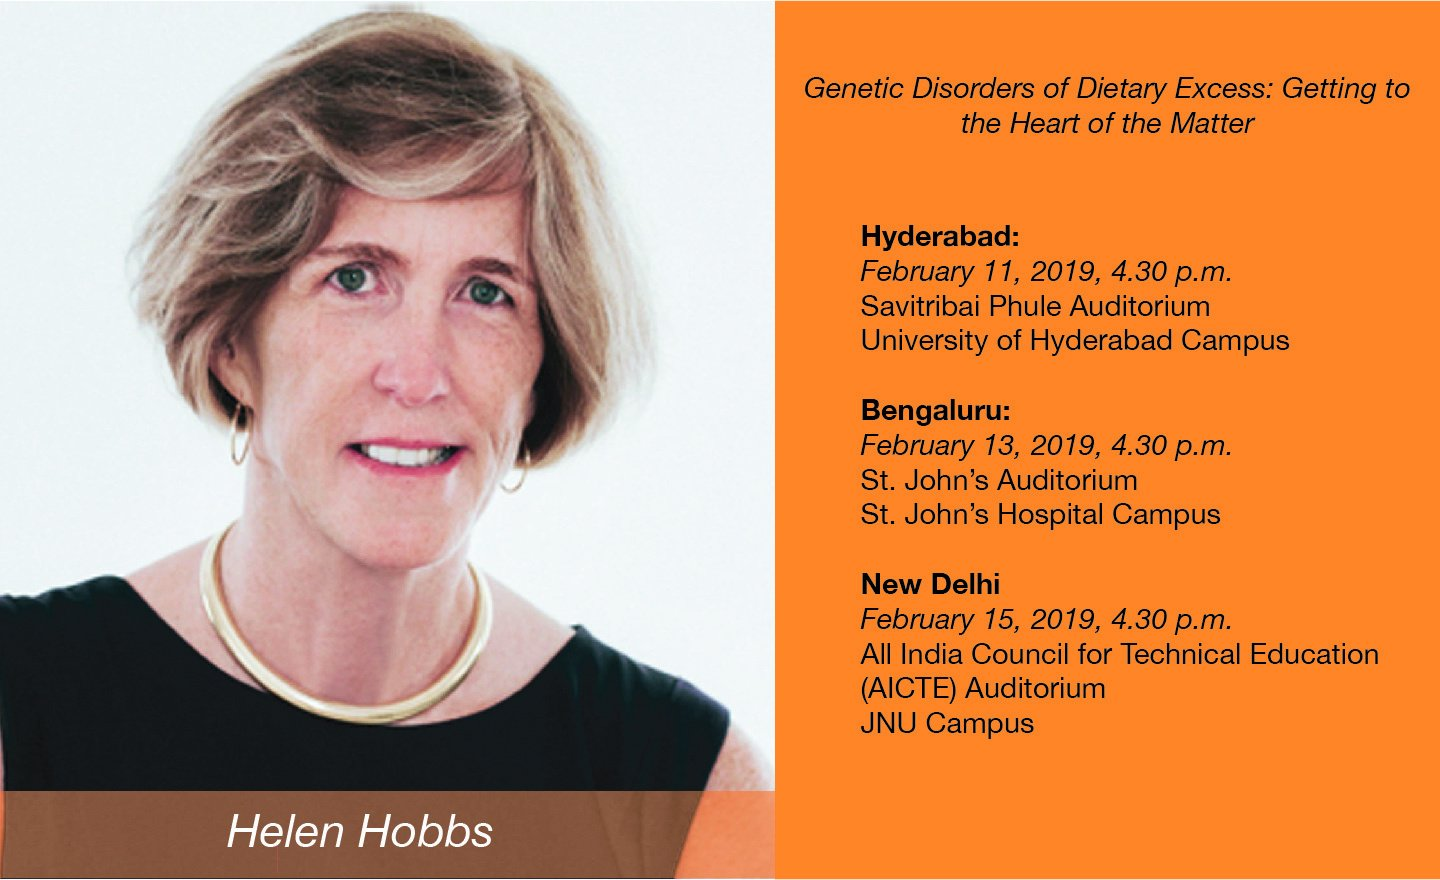 Helen Hobbs, Speaker for the 2019 series